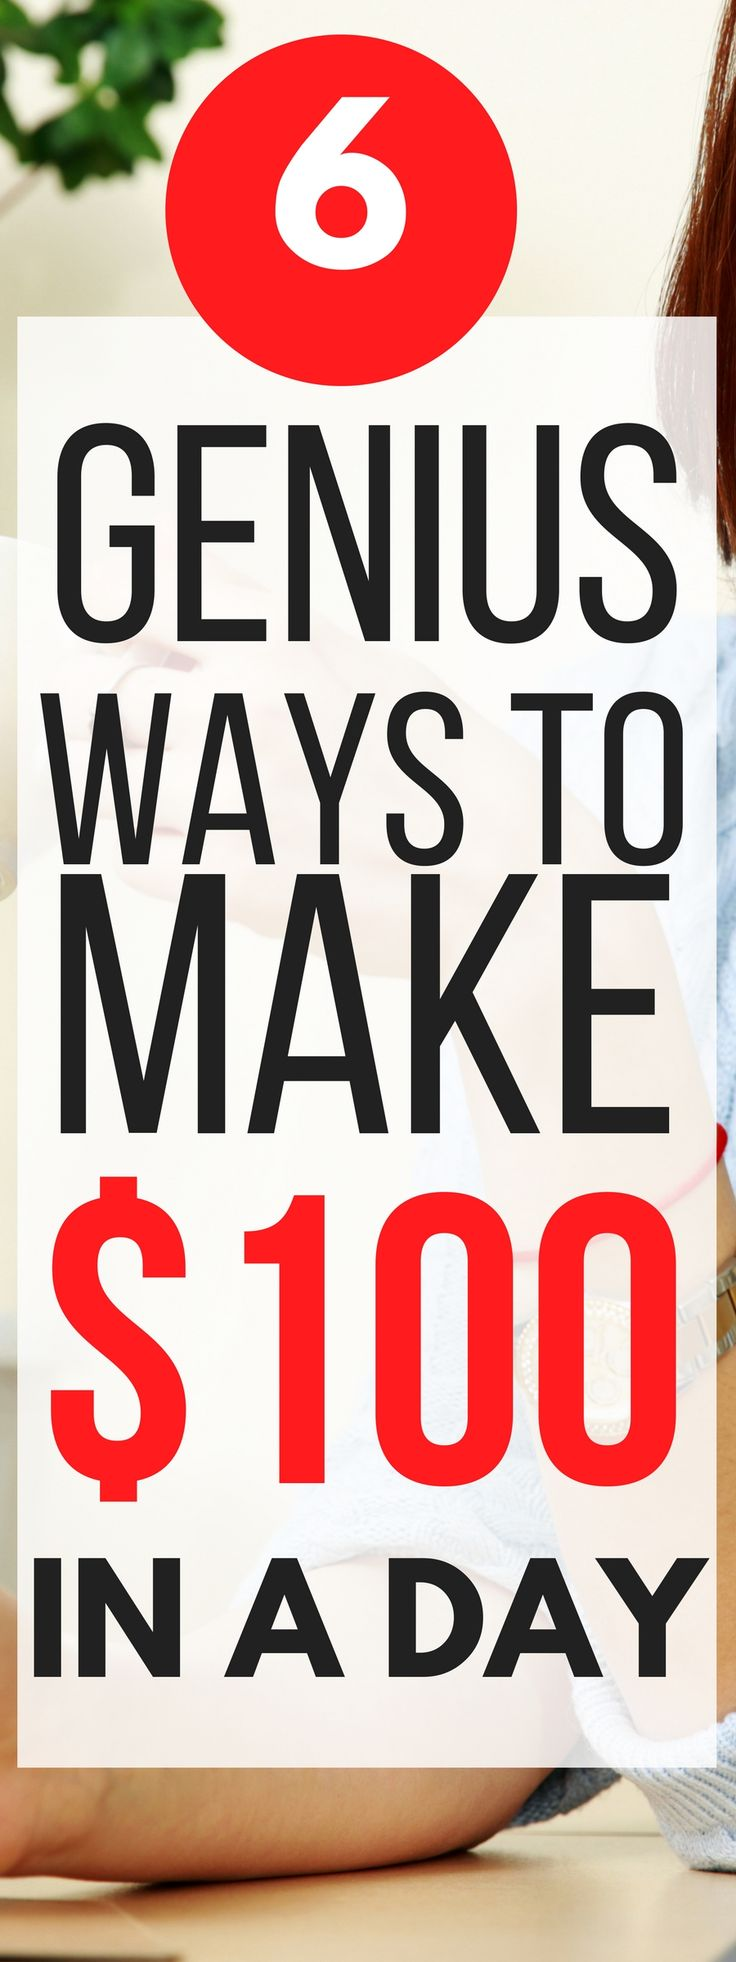 These 6 ways to make an extra $100 in a day are THE BEST! I'm so glad I found this, now I can make extra money in my spare time with these ideas. Pinning for sure!